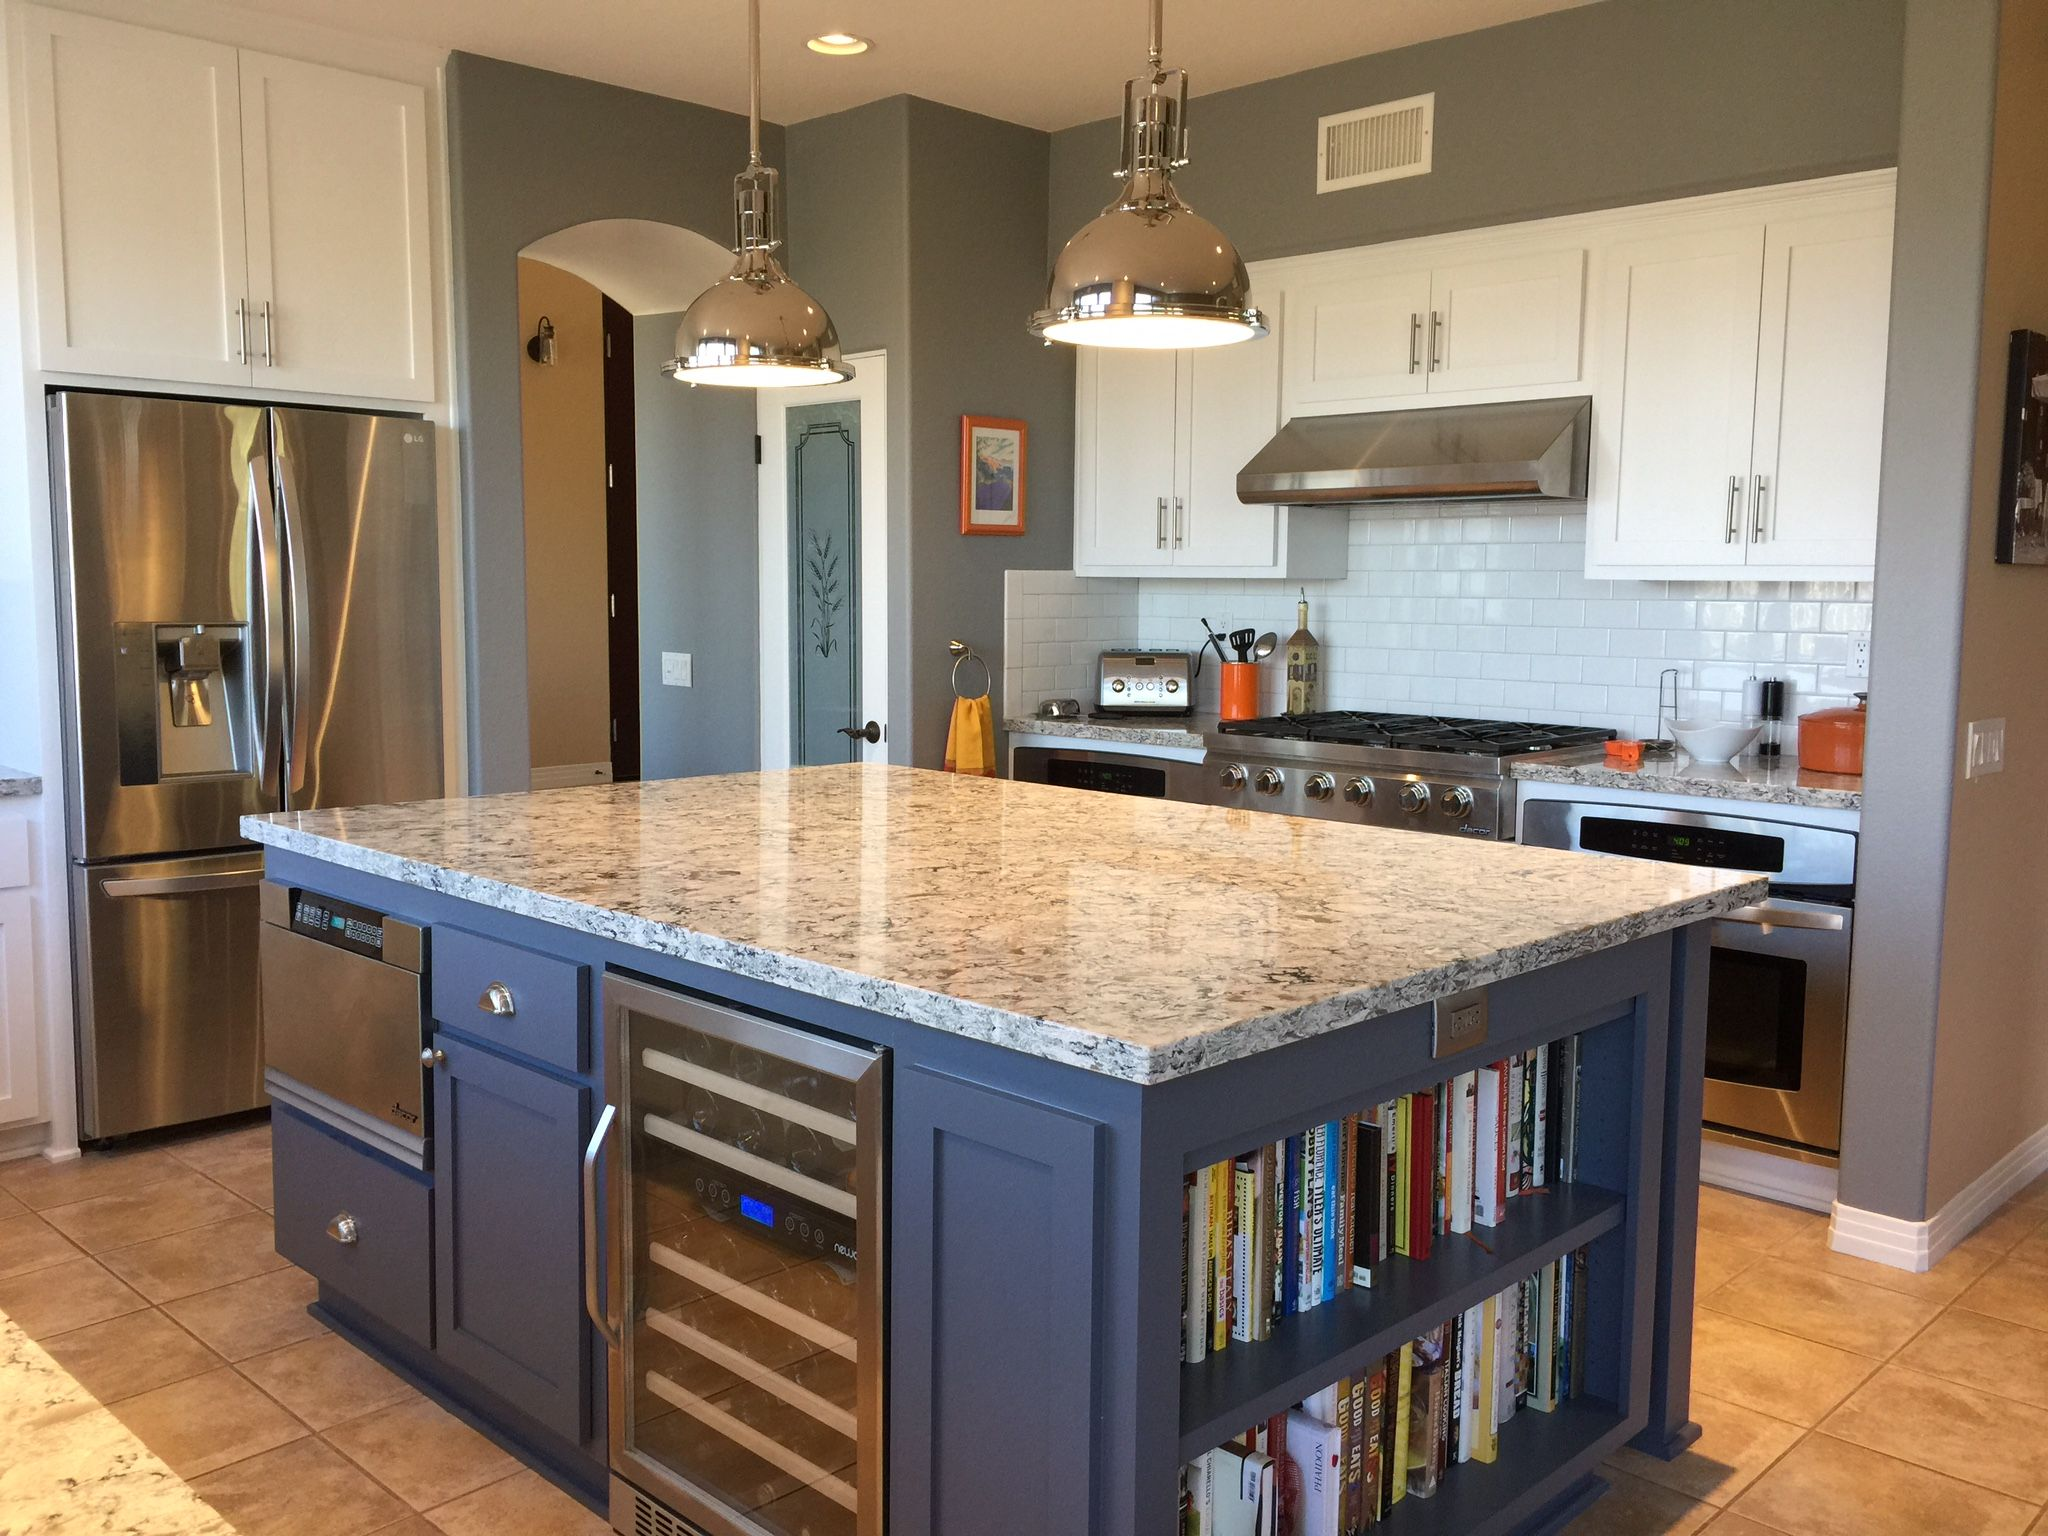 Final kitchen cambria praa sands quartz countertop restoration hardware harmony pendant - Pictures of kitchens with quartz countertops ...